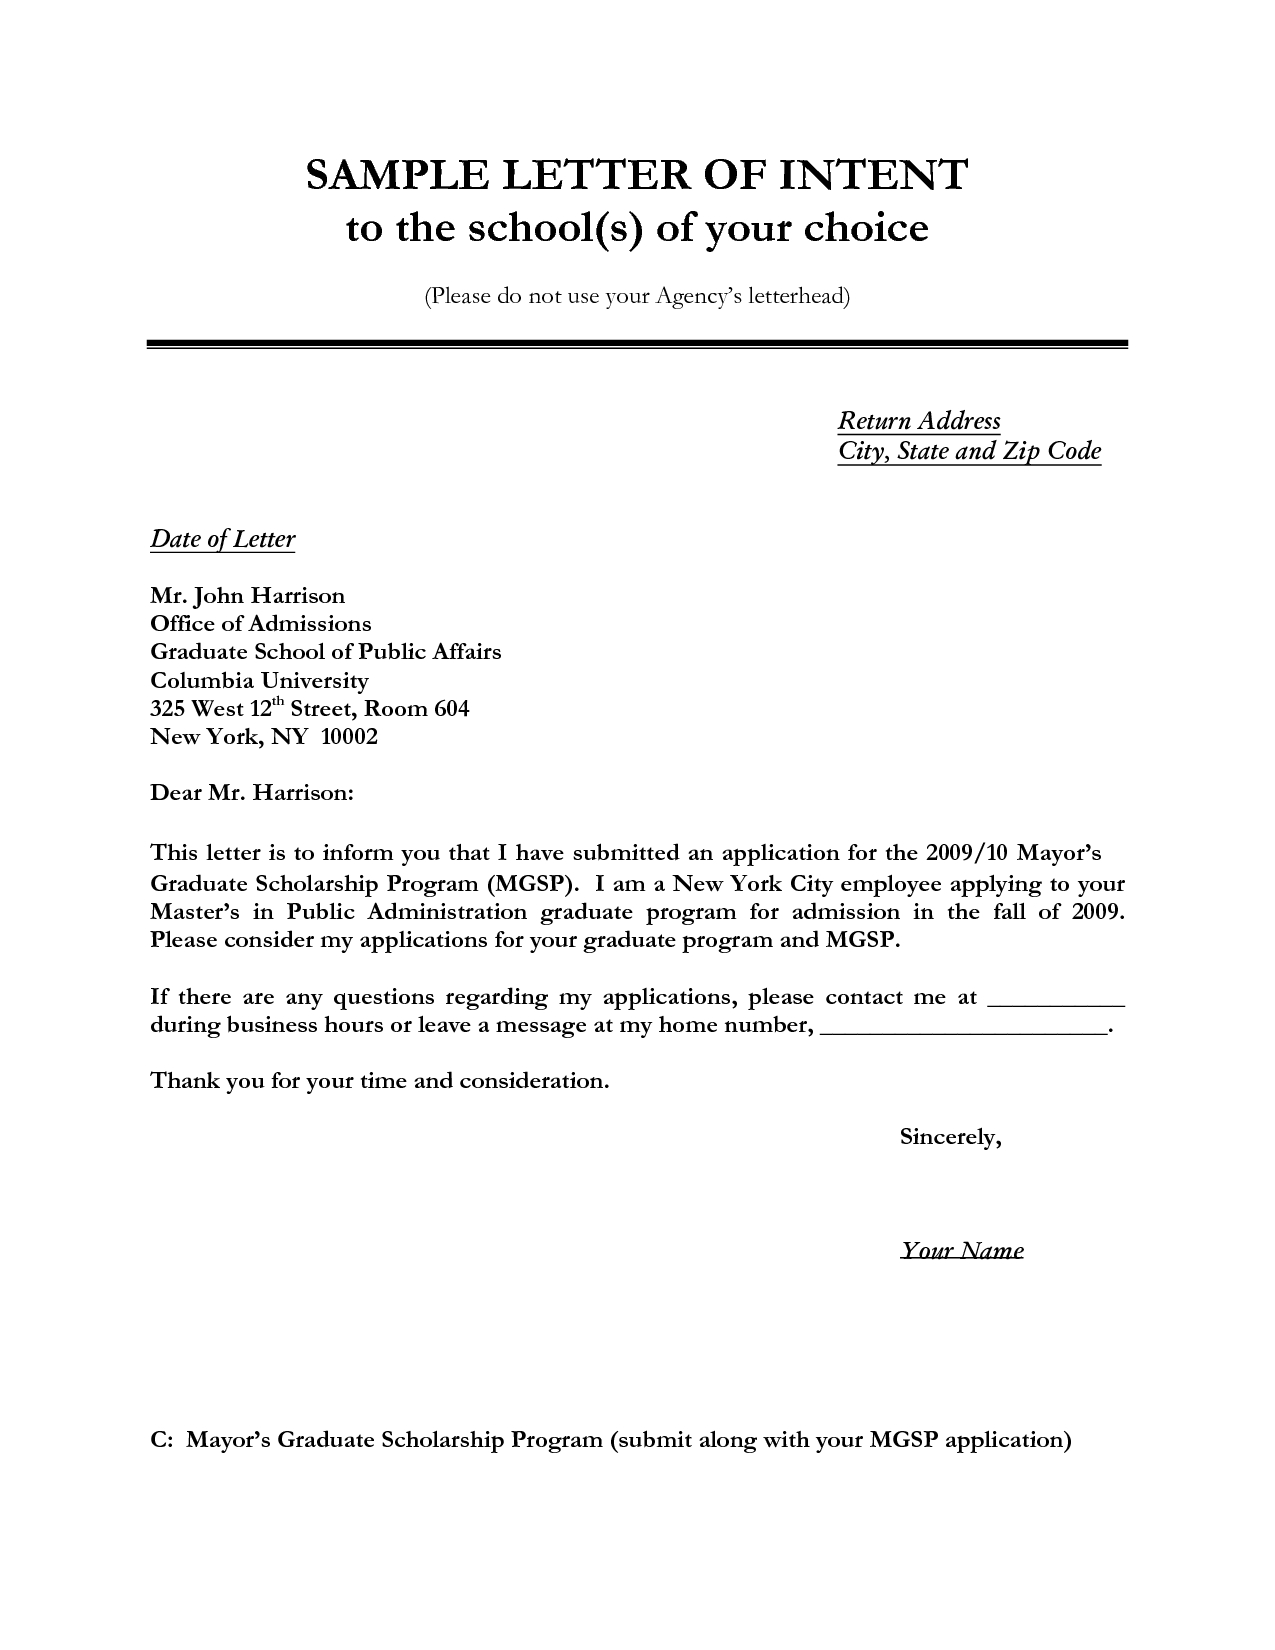 free real estate letter of intent template example-Letter of intent sample 9-c